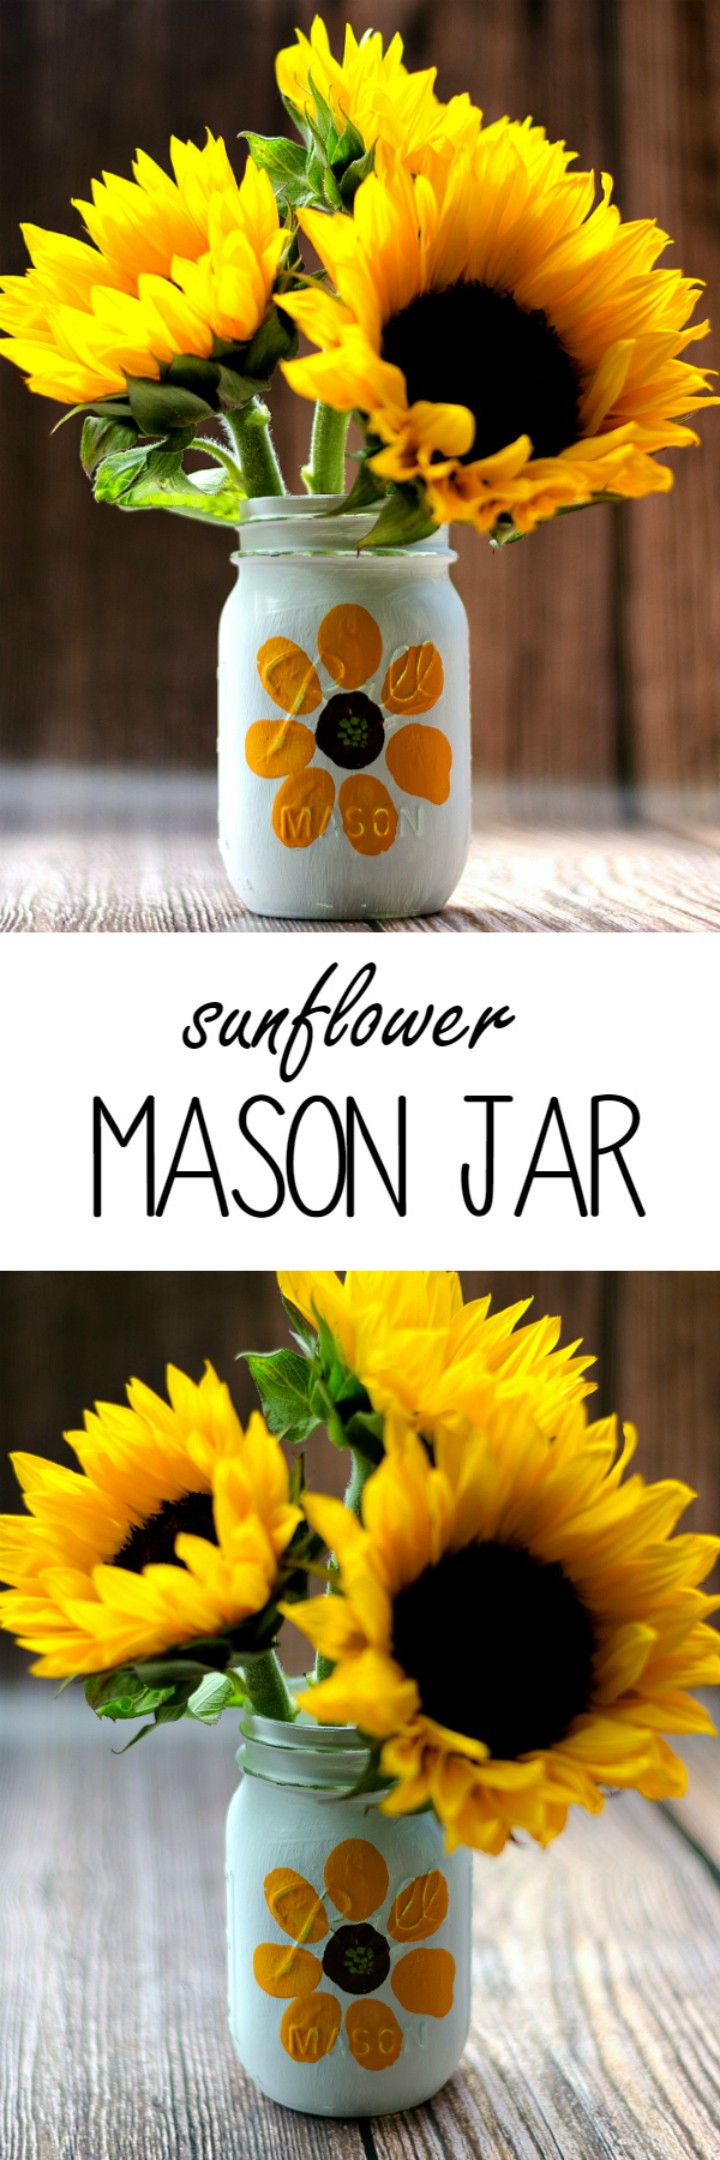 Sunflower Mason Jar - mason jar craft ideas | mason jar craft ideas diy | mason jar craft ideas christmas | mason jar craft ideas decor | mason jar craft ideas for kids